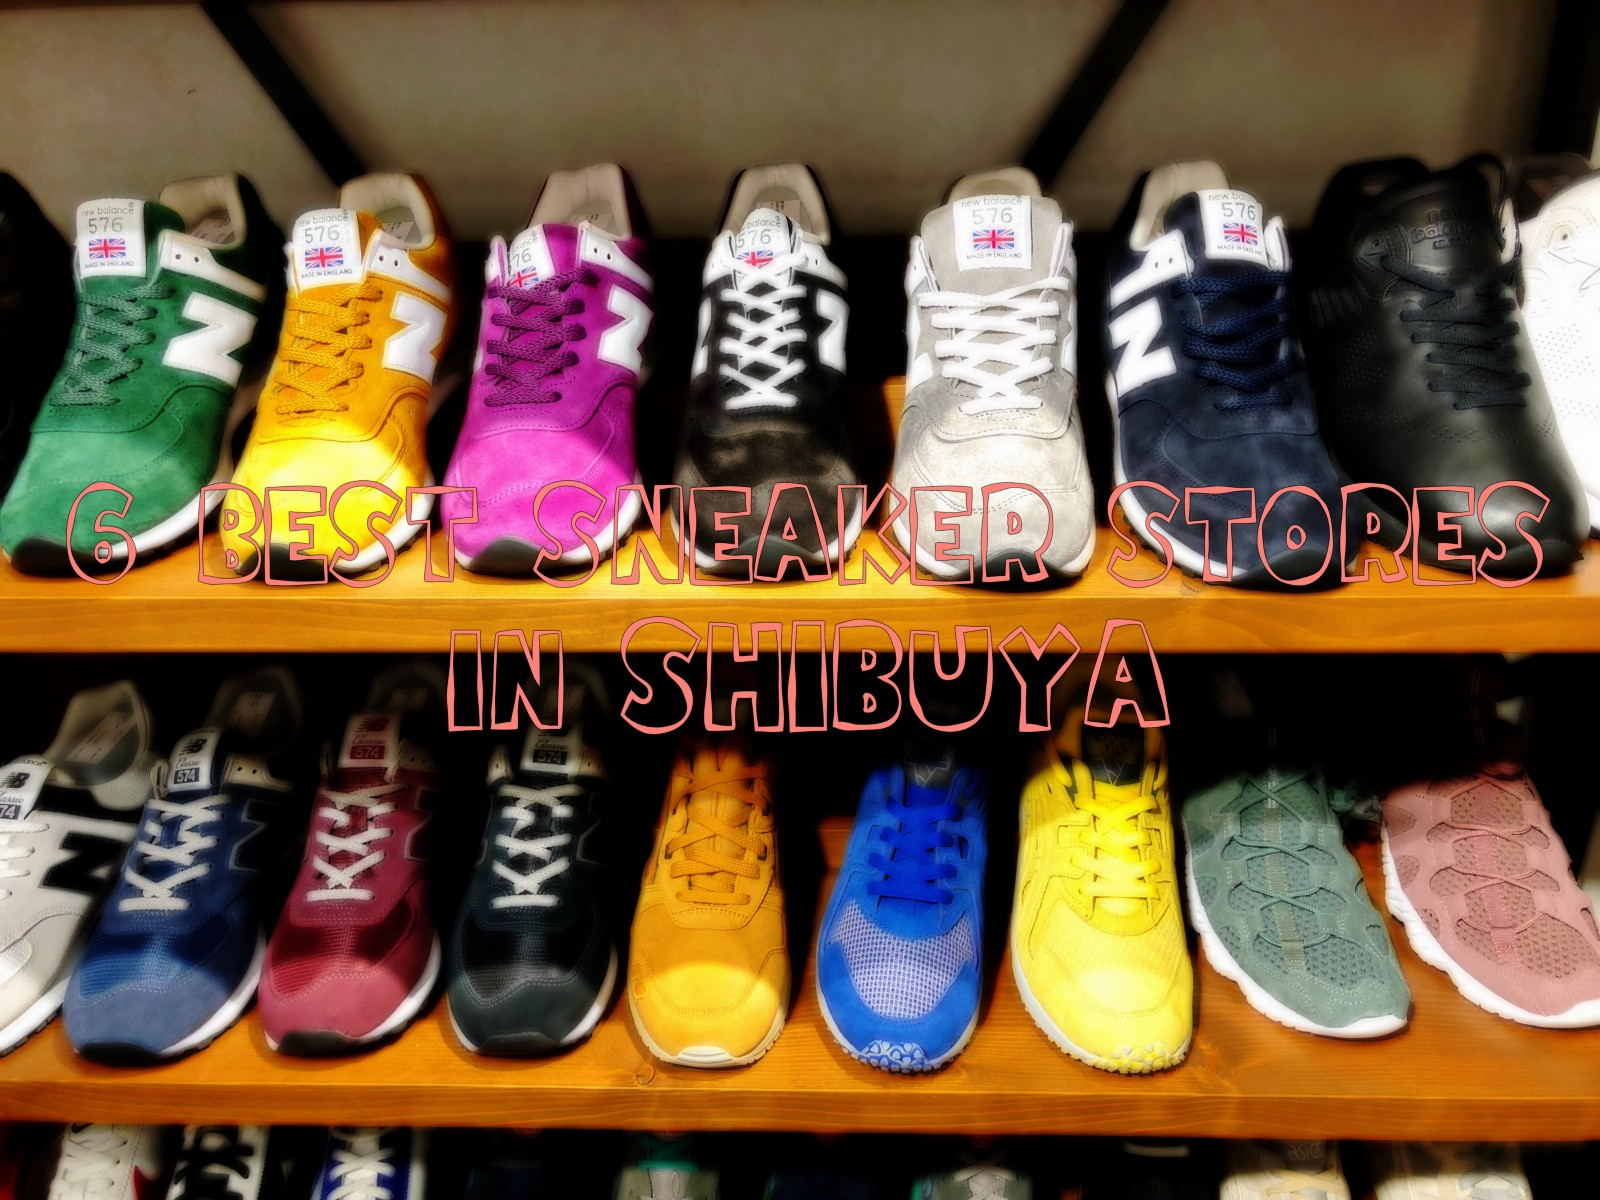 Descifrar convertible colisión  6 Best Sneaker Stores in Shibuya - Japan Web Magazine